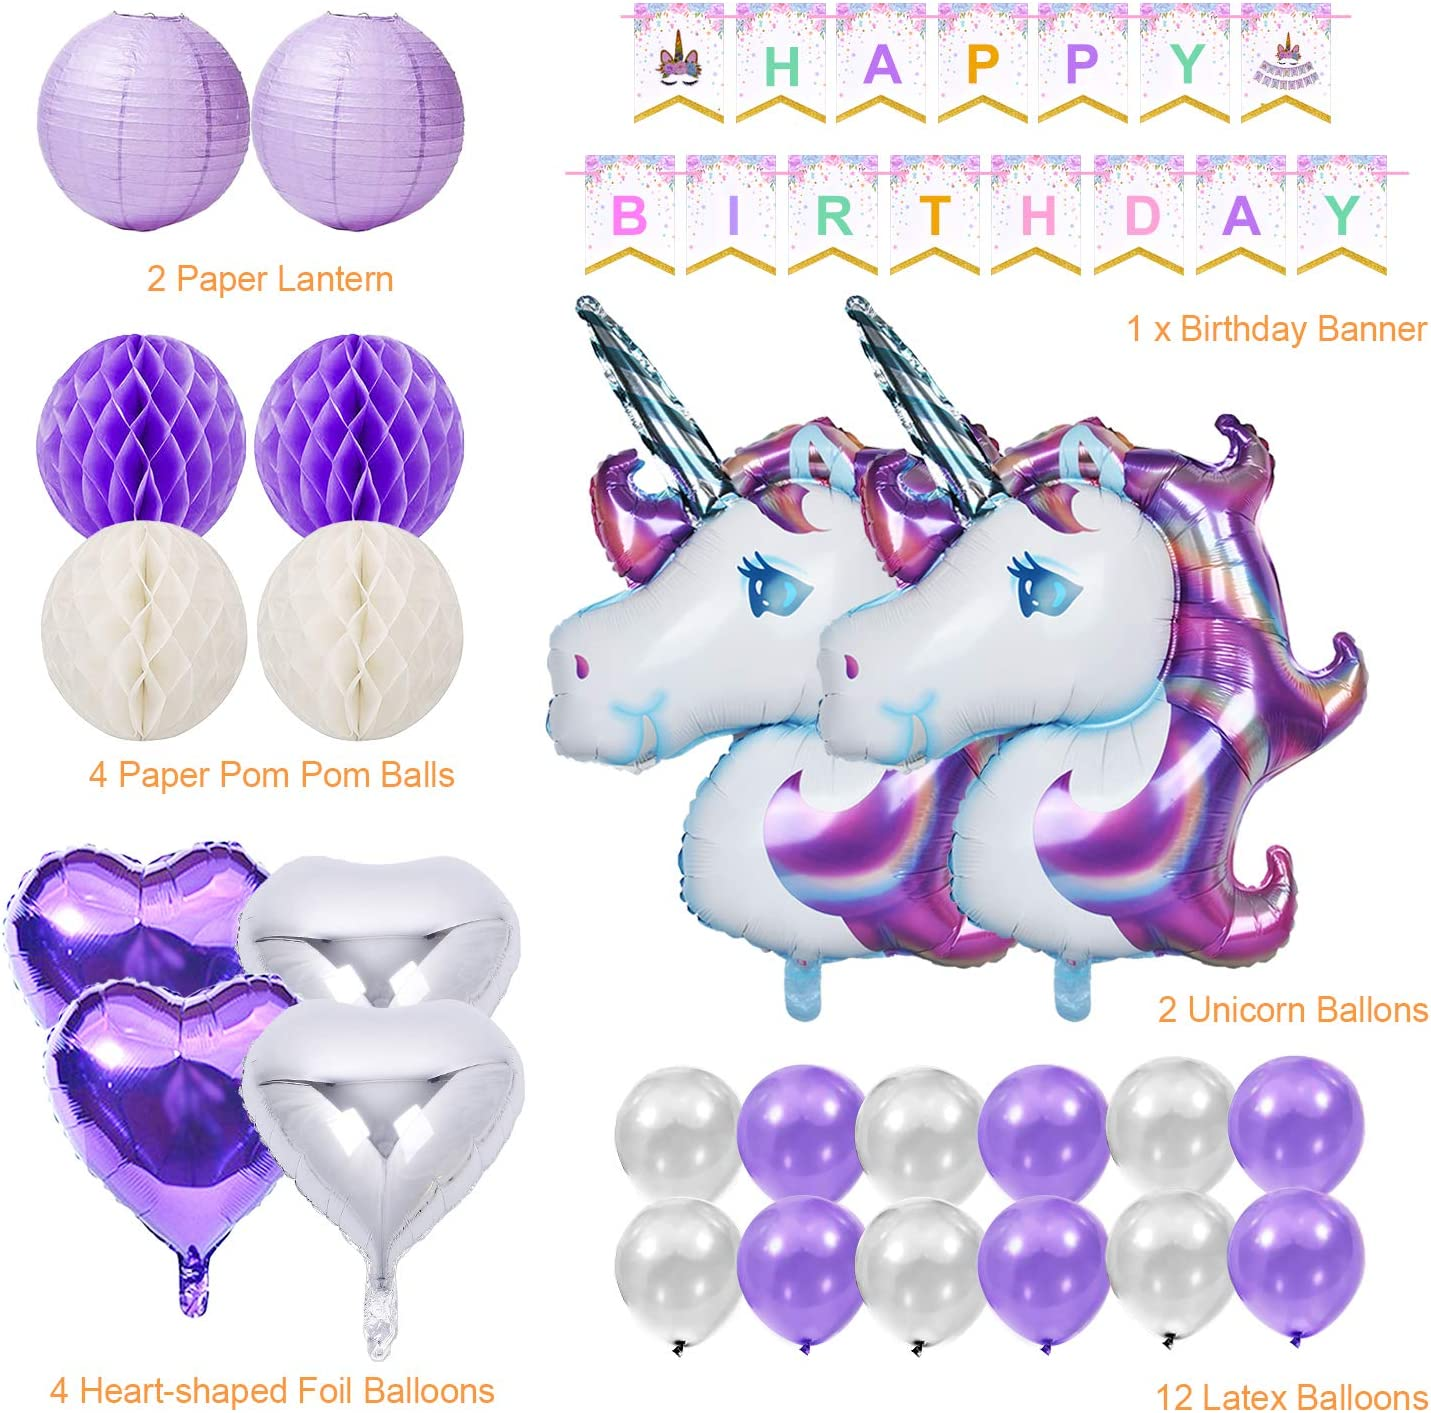 2pcs Huge Unicorn Balloon,Happy Birthday Ballon Banner,4pcs Helium Foil Star,1 Crown and 40pcs Latex Party Ballons for Infant Girl Boy Lady Birthday Party Yansion Unicorn Party Decorations Supplies